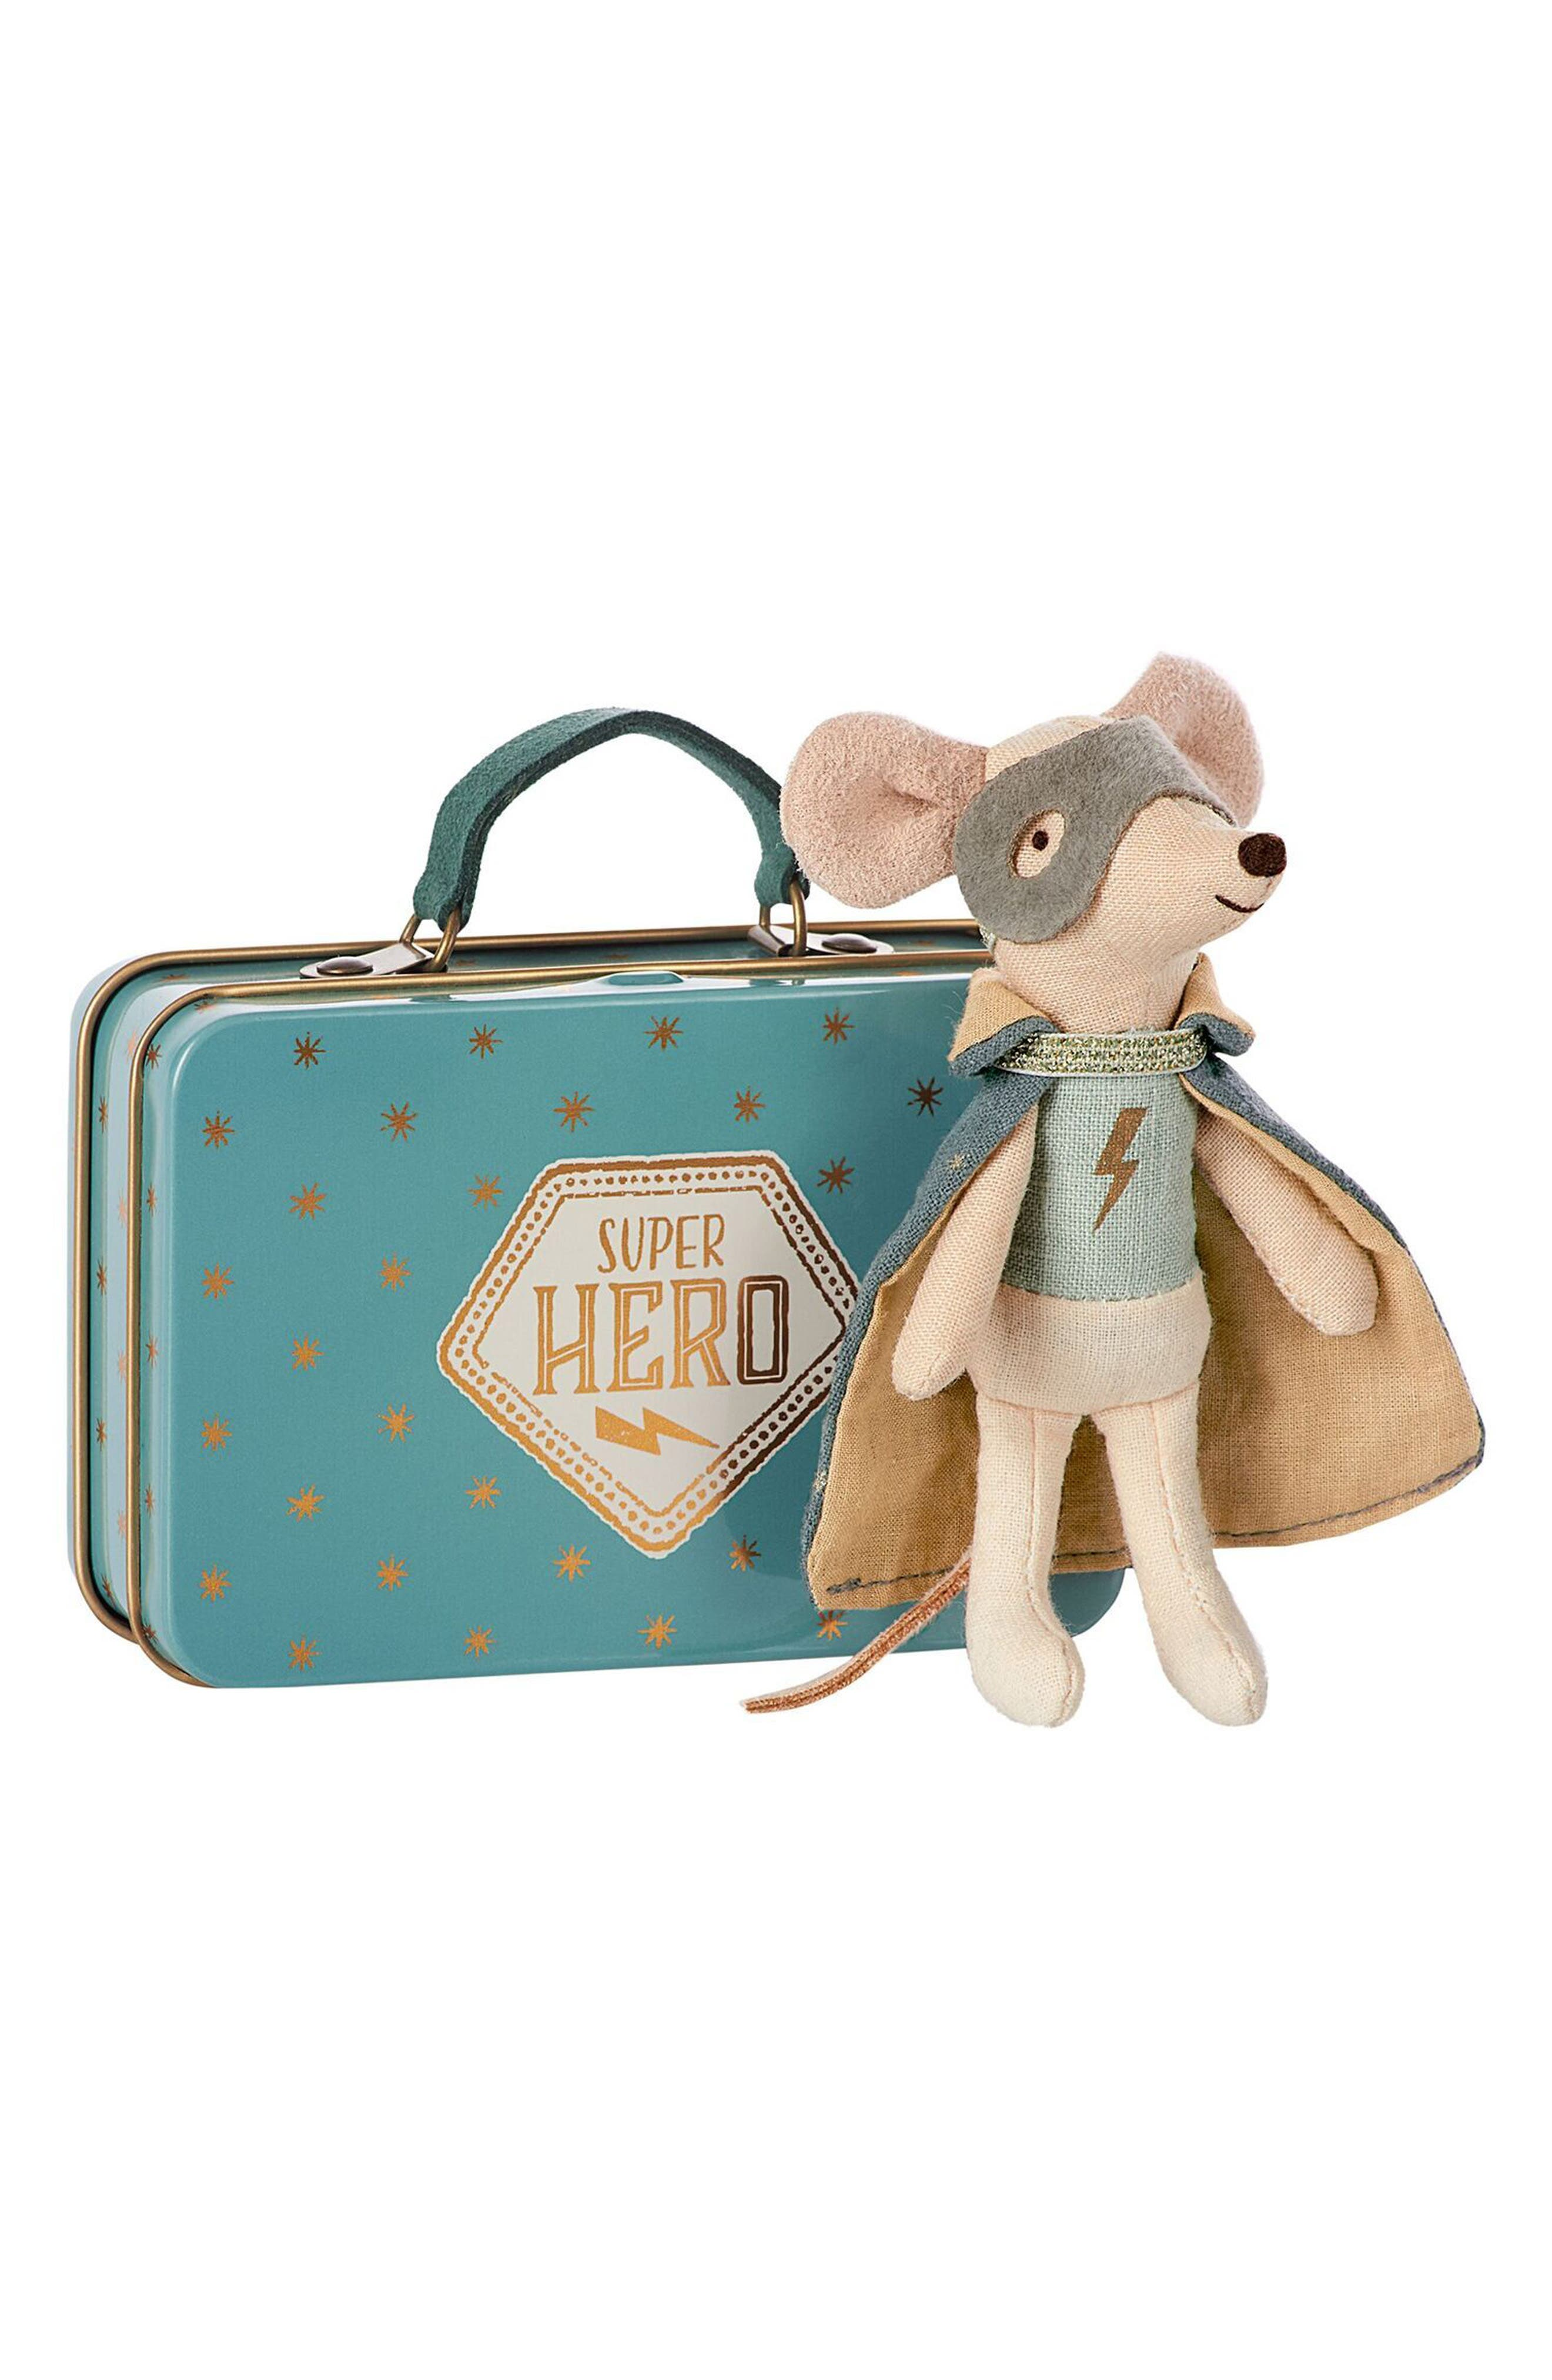 Super Hero Toy Mouse in a Suitcase,                         Main,                         color,